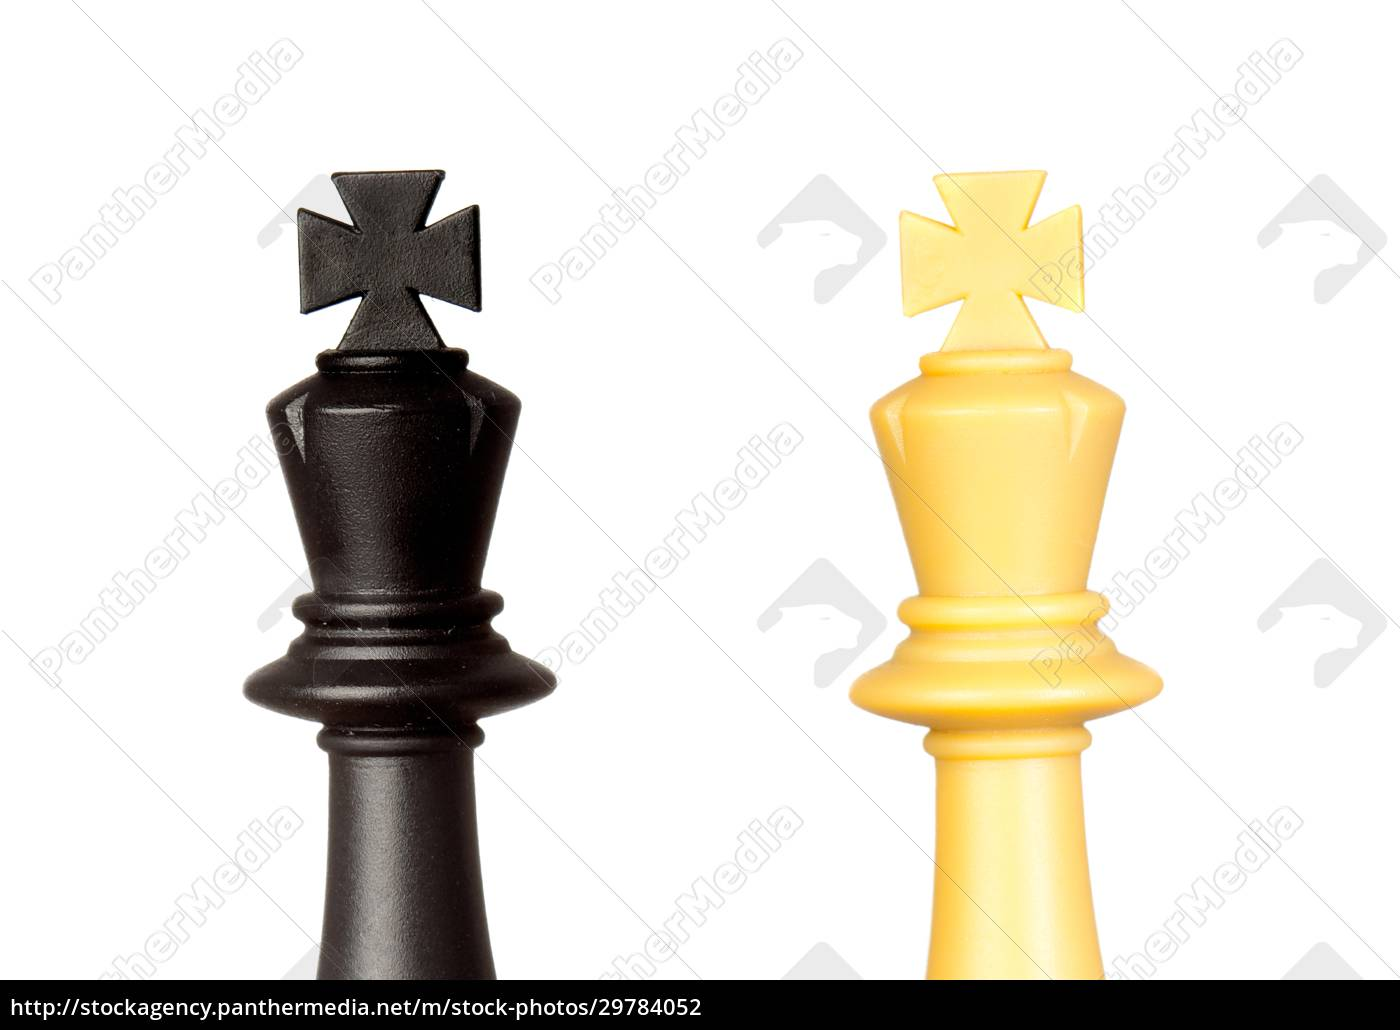 kings, competition - 29784052